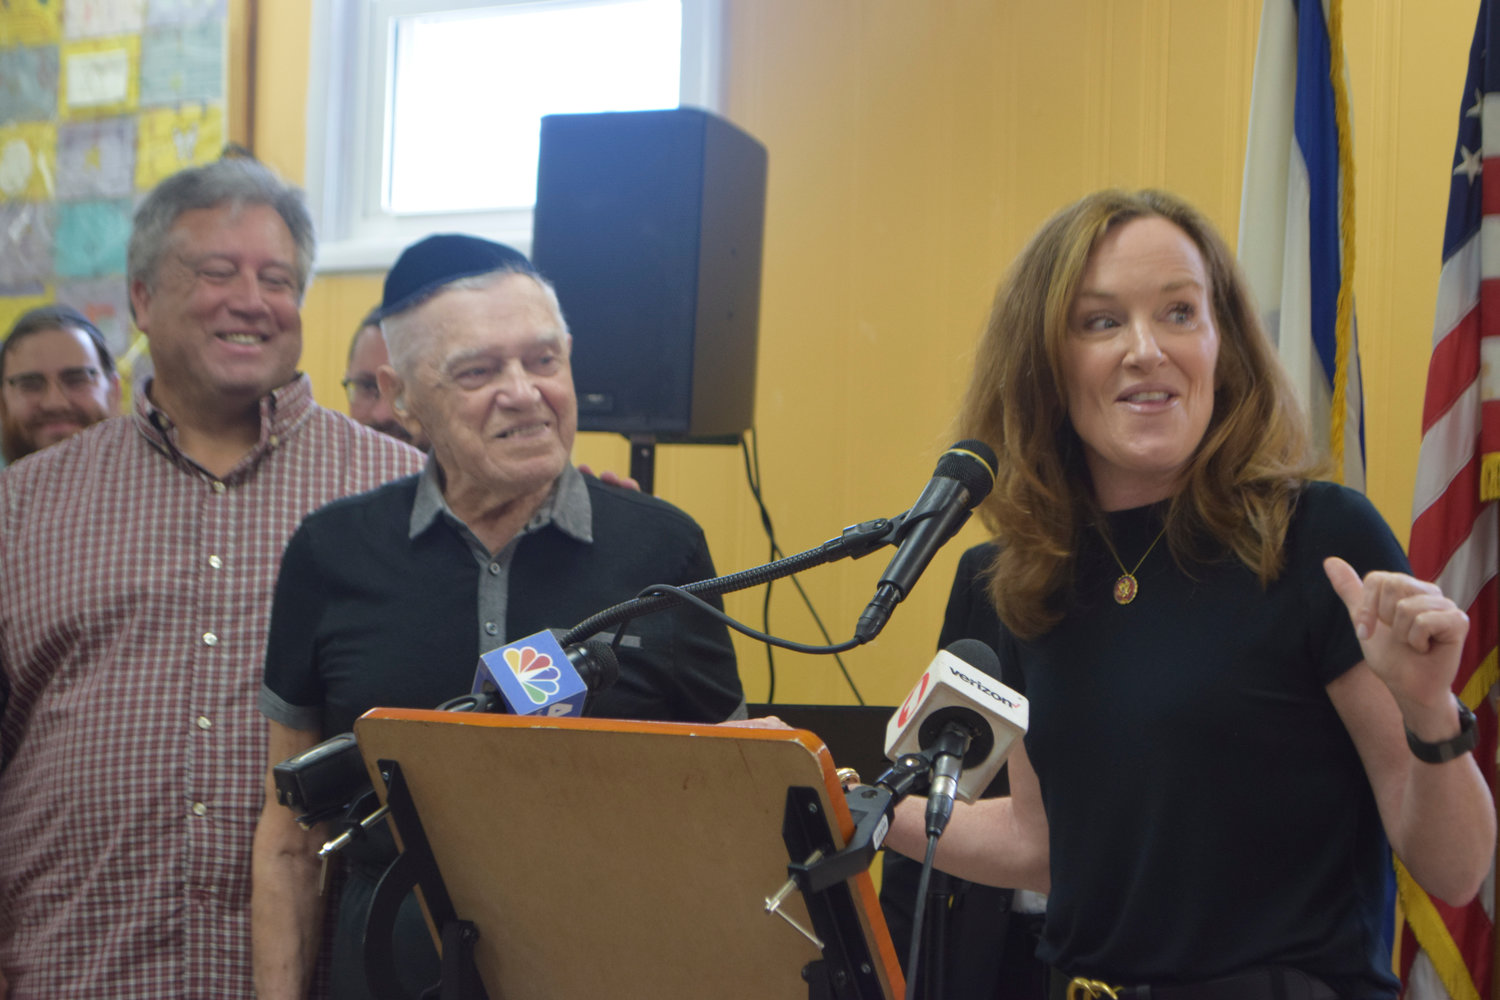 Holocaust survivor Marvin Jacobs, center, was honored by the Gural JCC on June 6. With him were his son, David Jacobs, and U.S. Rep. Kathleen Rice.